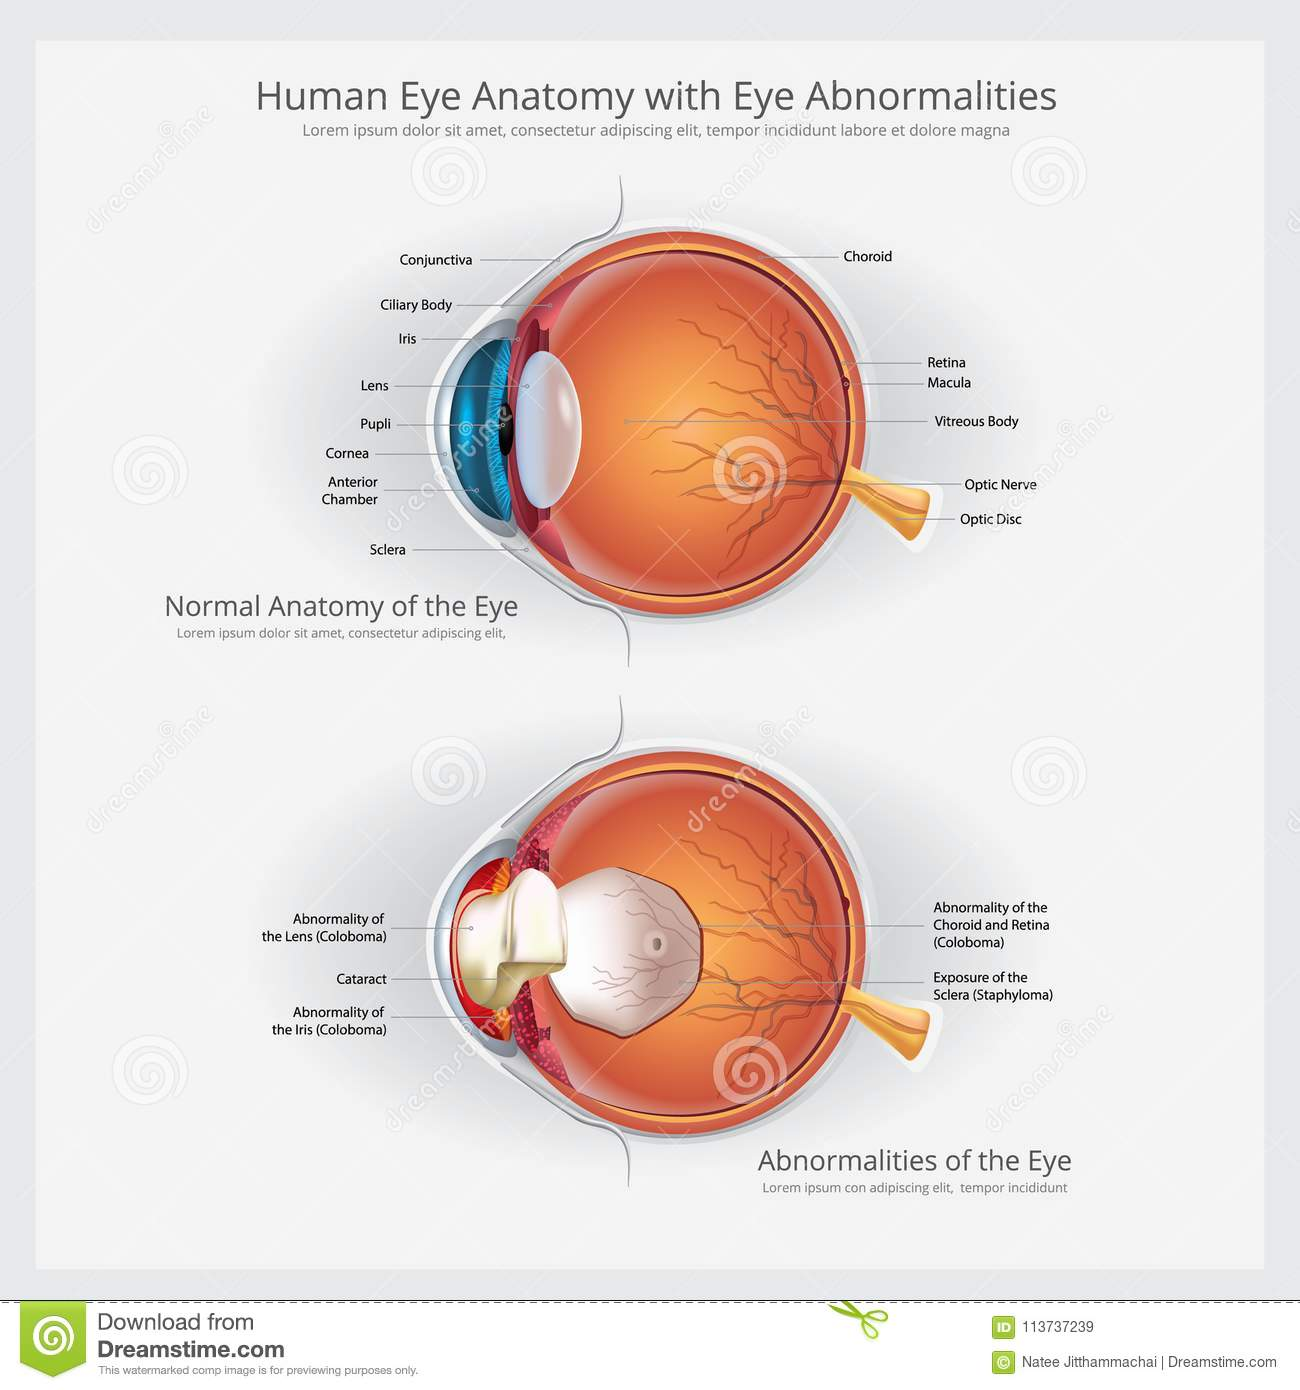 Eye Anatomy With Eye Abnormalities Stock Vector - Illustration of ...